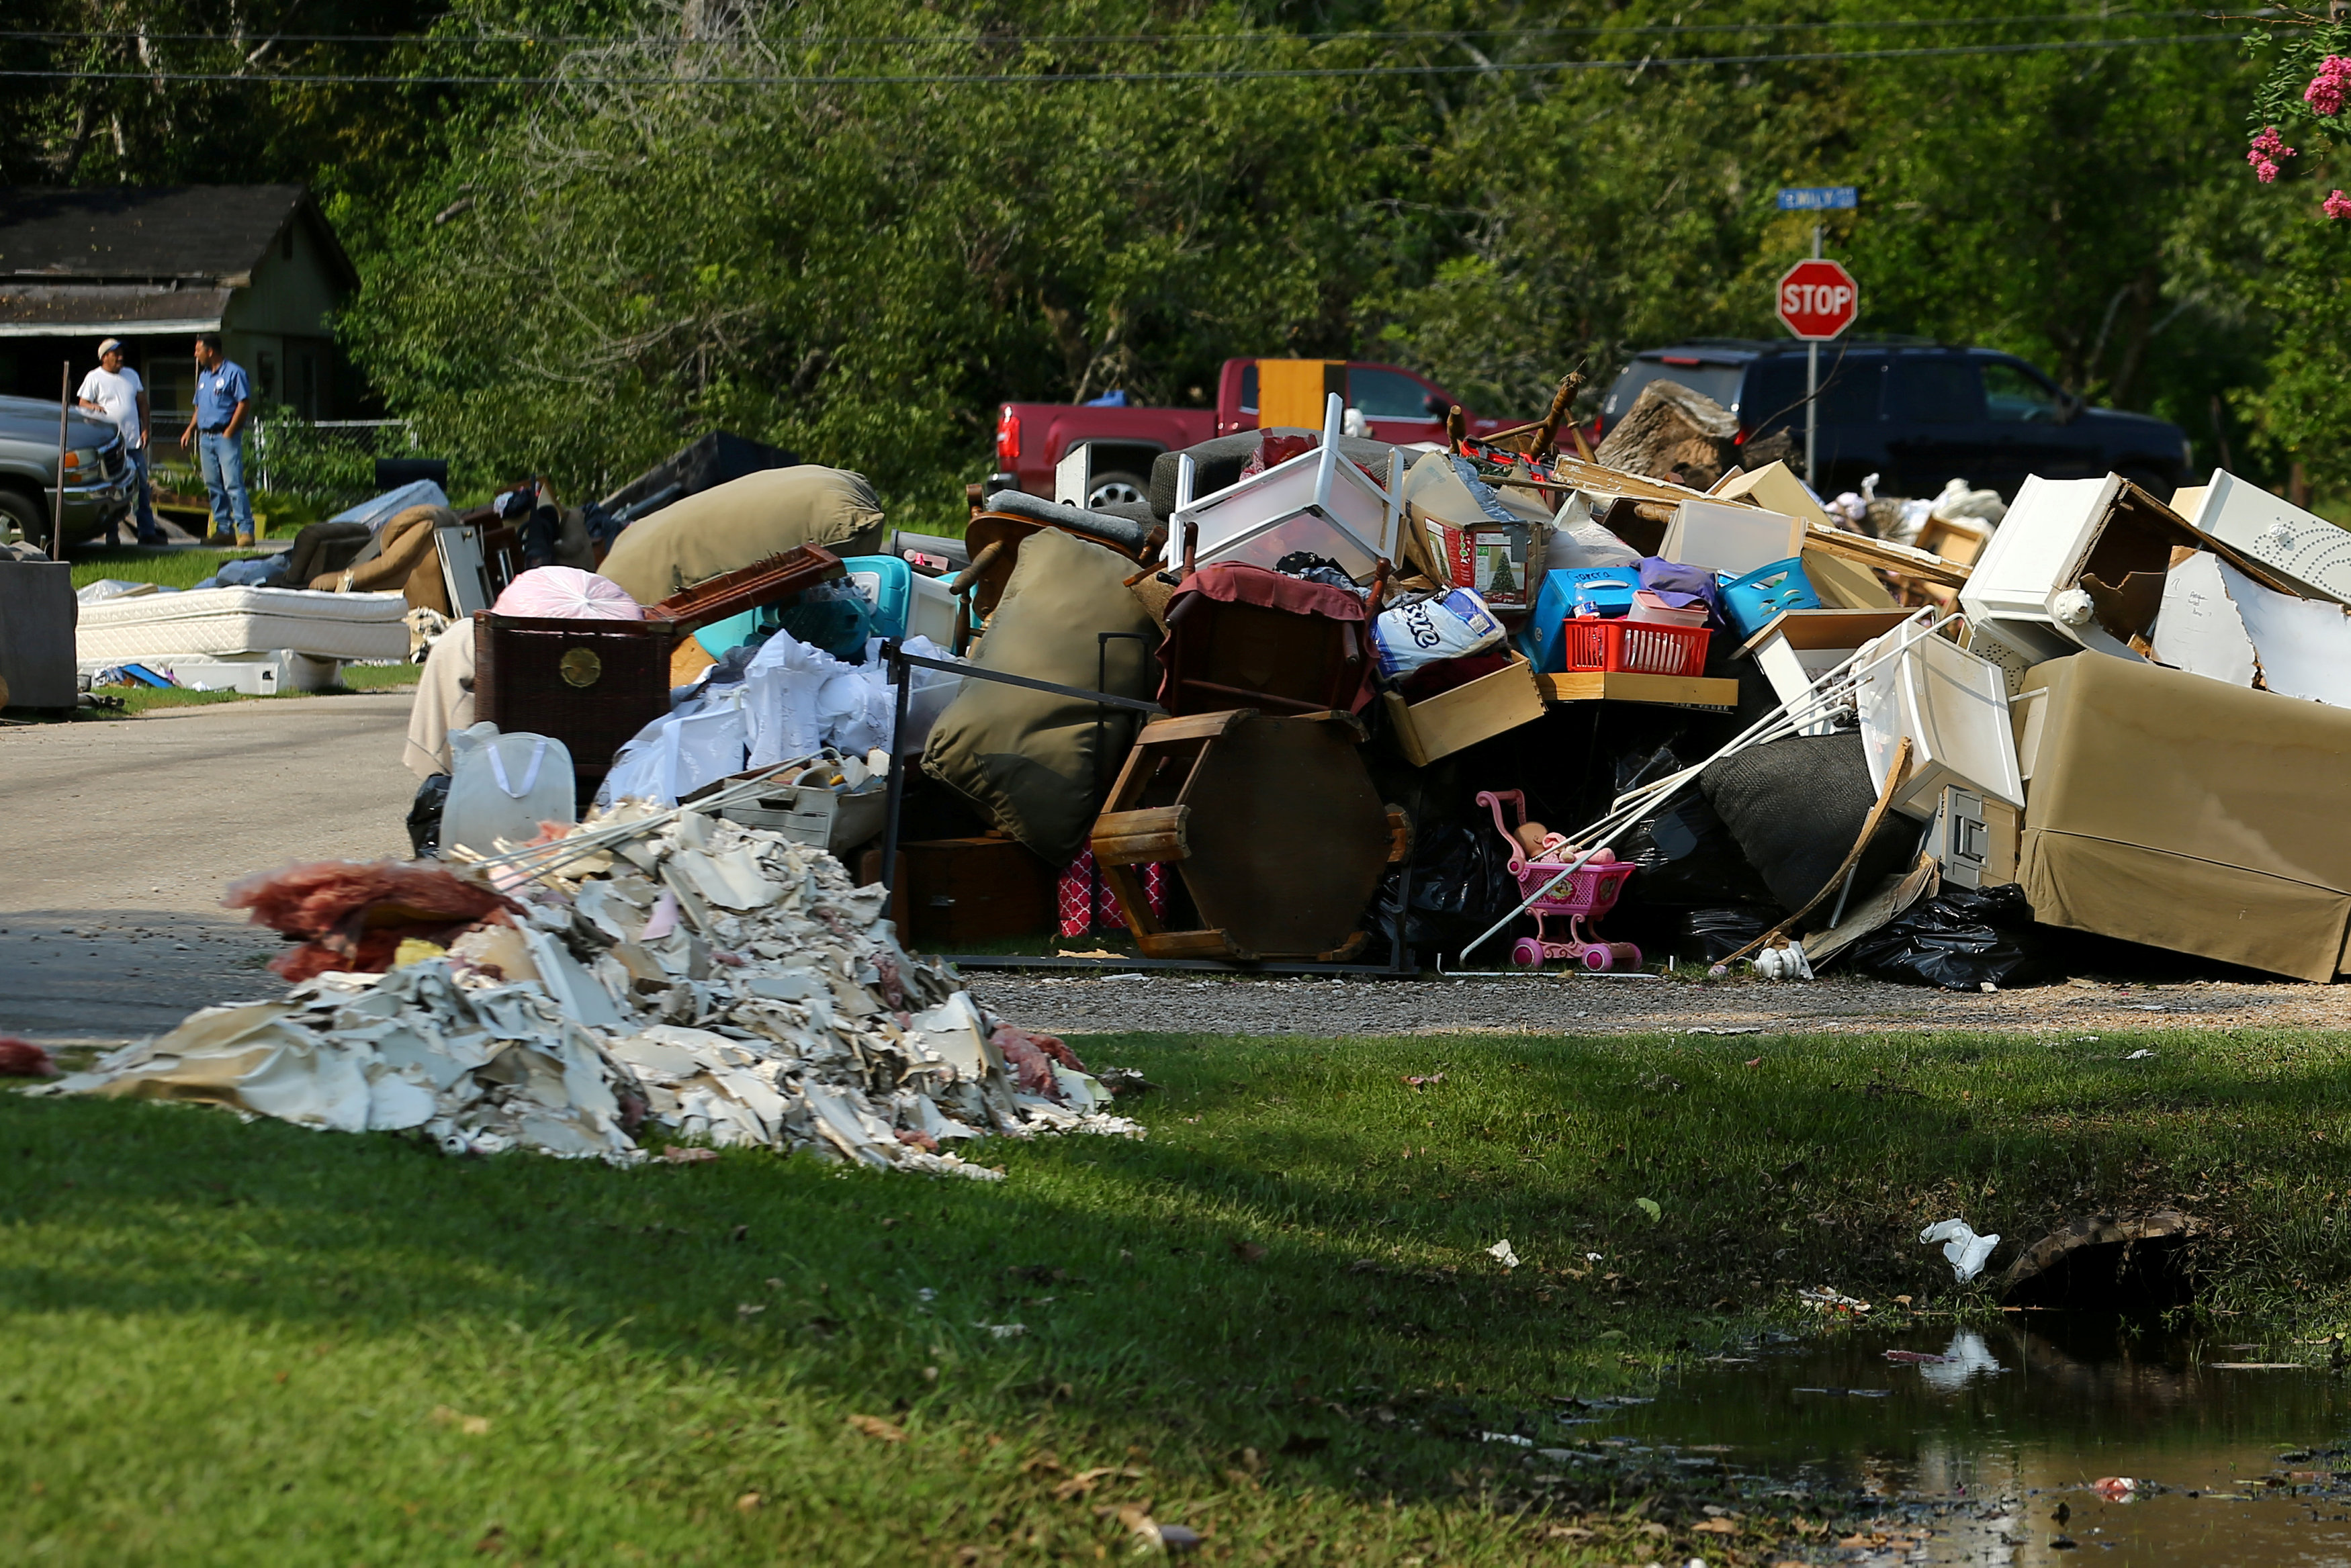 FILE PHOTO: Flood-damaged contents from people's homes line the street following the aftermath of tropical storm Harvey in Wharton, Texas, U.S., September 6, 2017. REUTERS/Mike Blake/File Photo